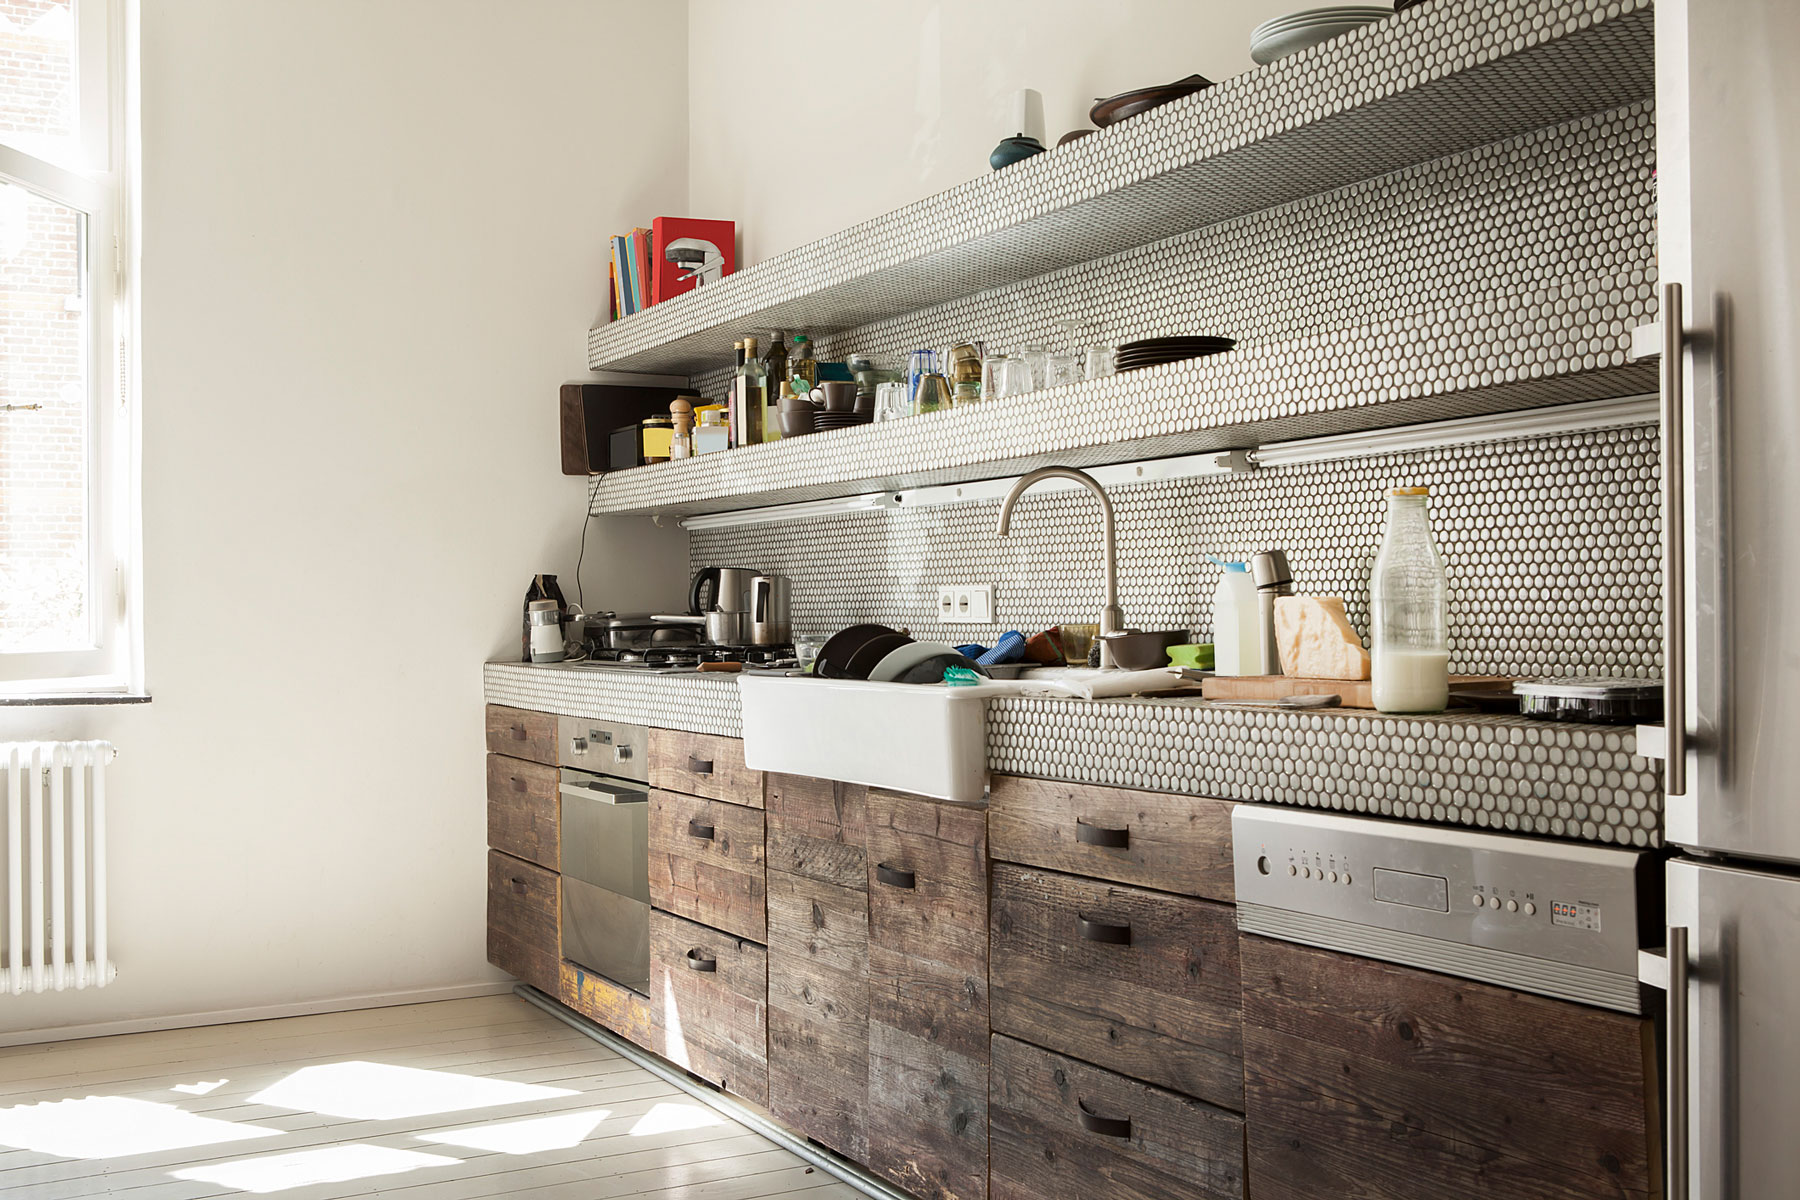 Unique Backsplash Ideas You Probably Haven Rsquo T Seen Before Real Simple